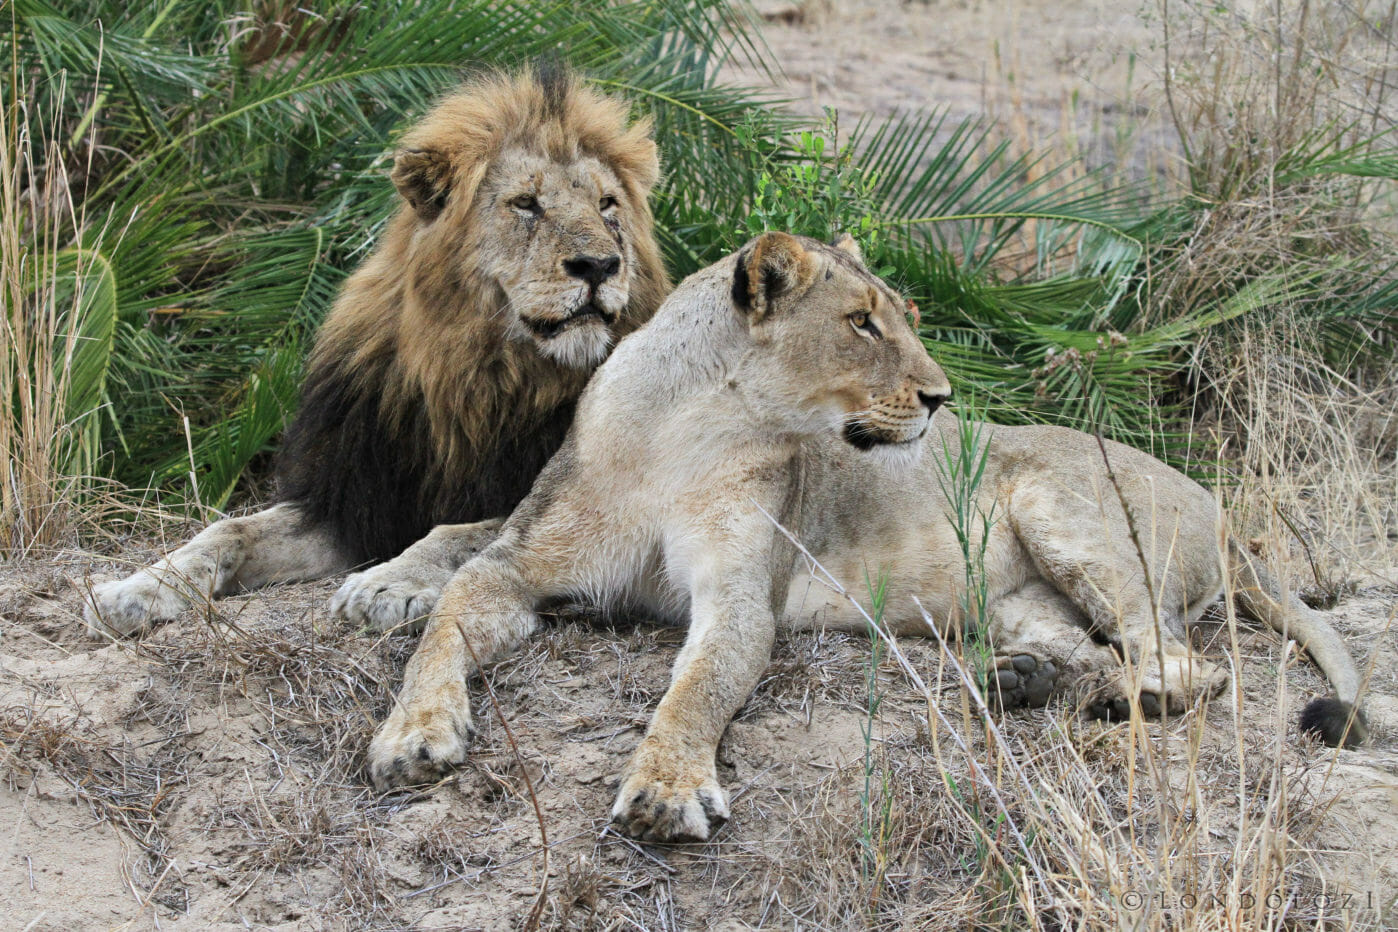 A mating pair of lions, the maned male lion lies behind the female at Londolozi